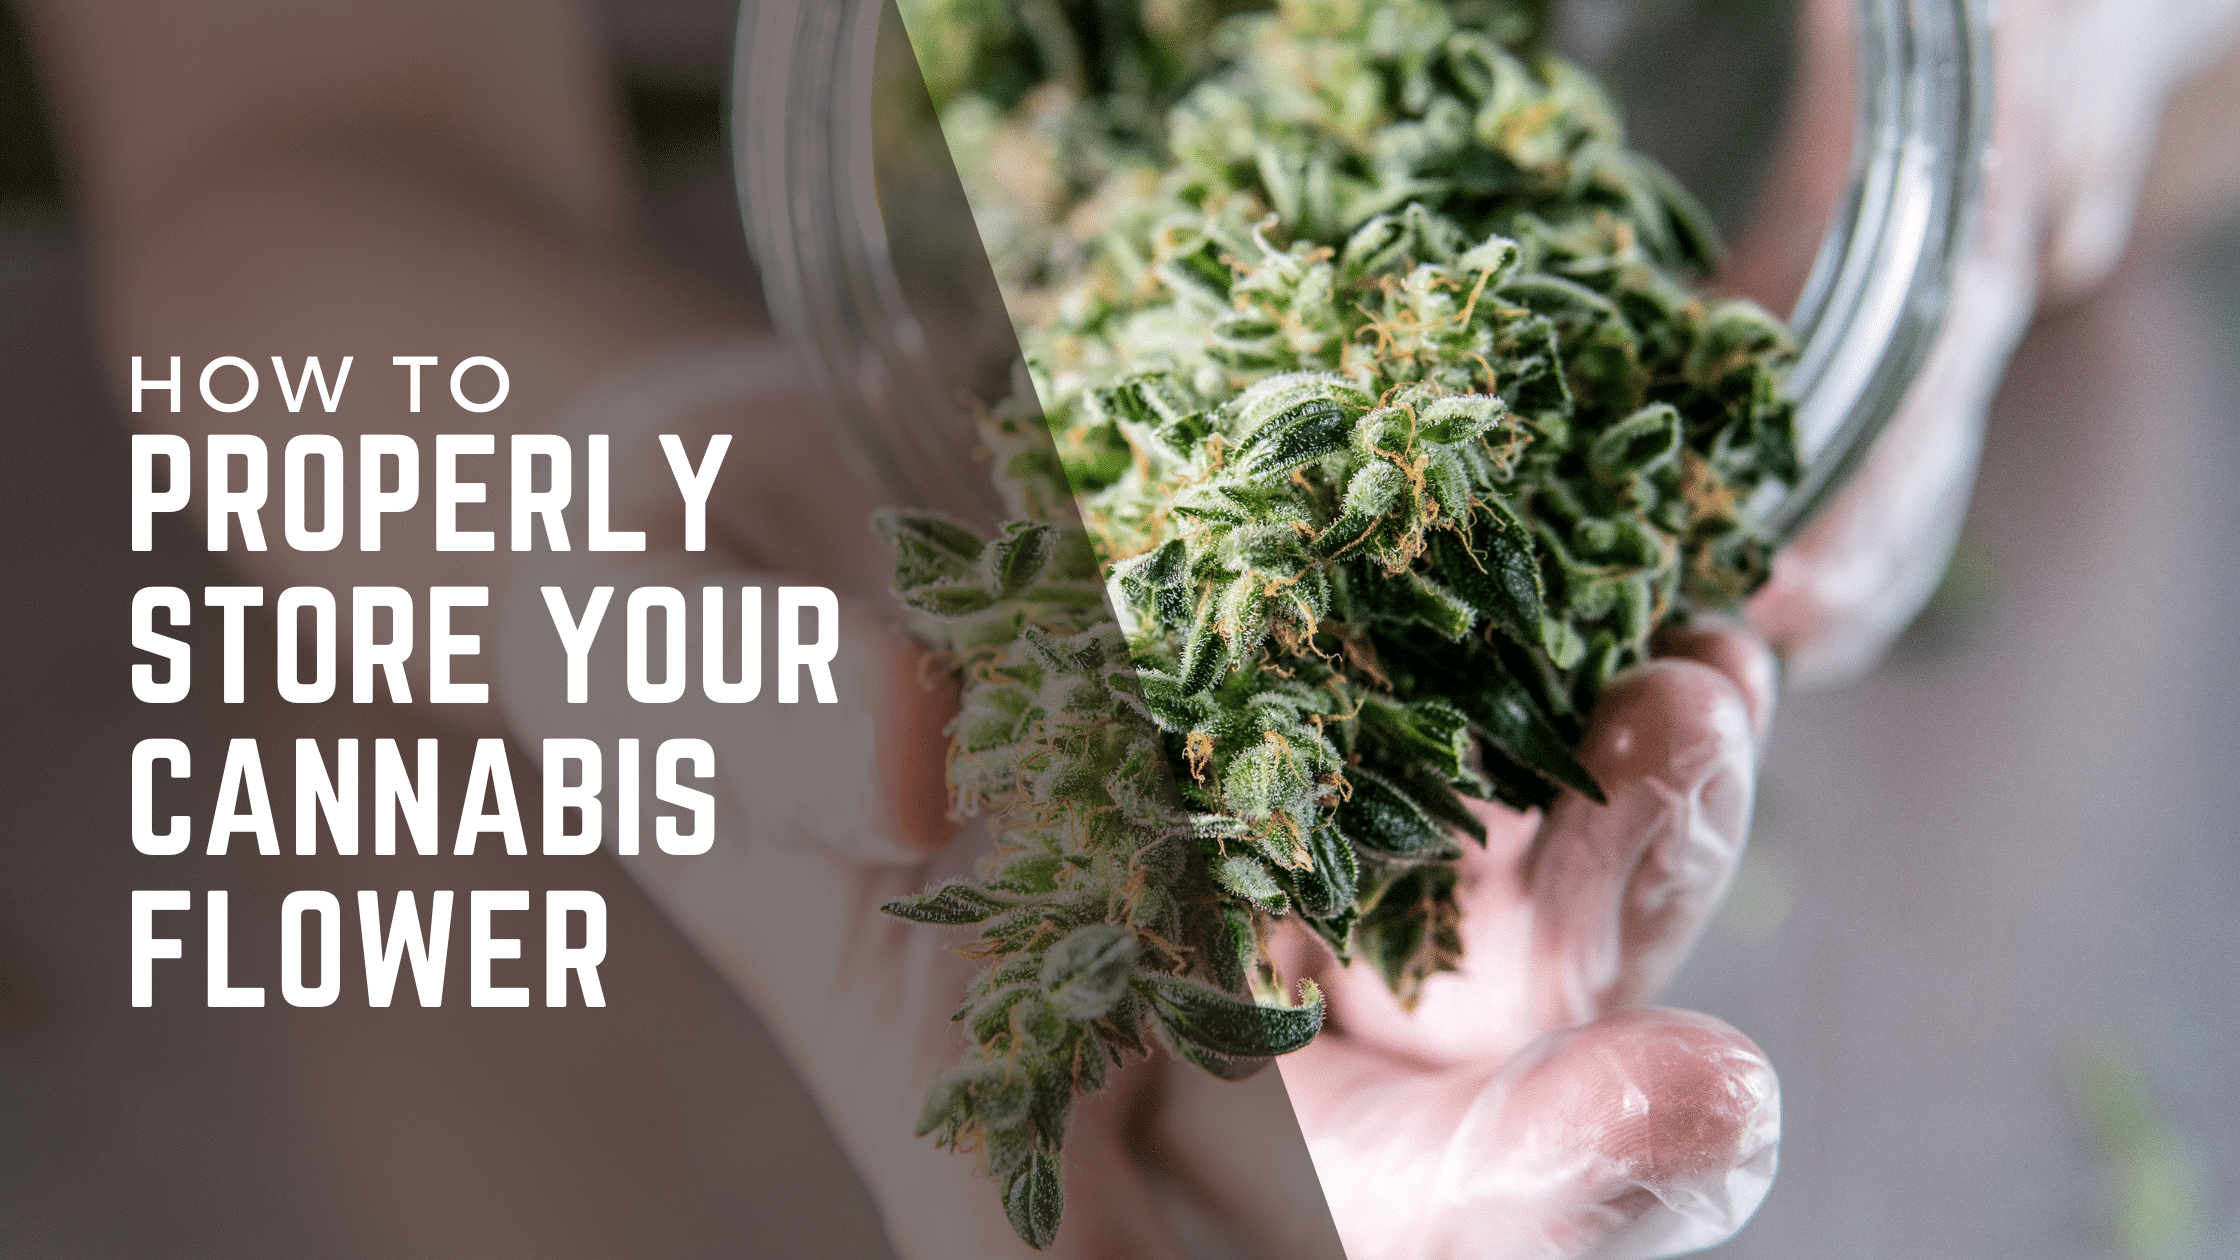 Image of cannabis coming out of a jar with the text how to properly store your cannabis flower